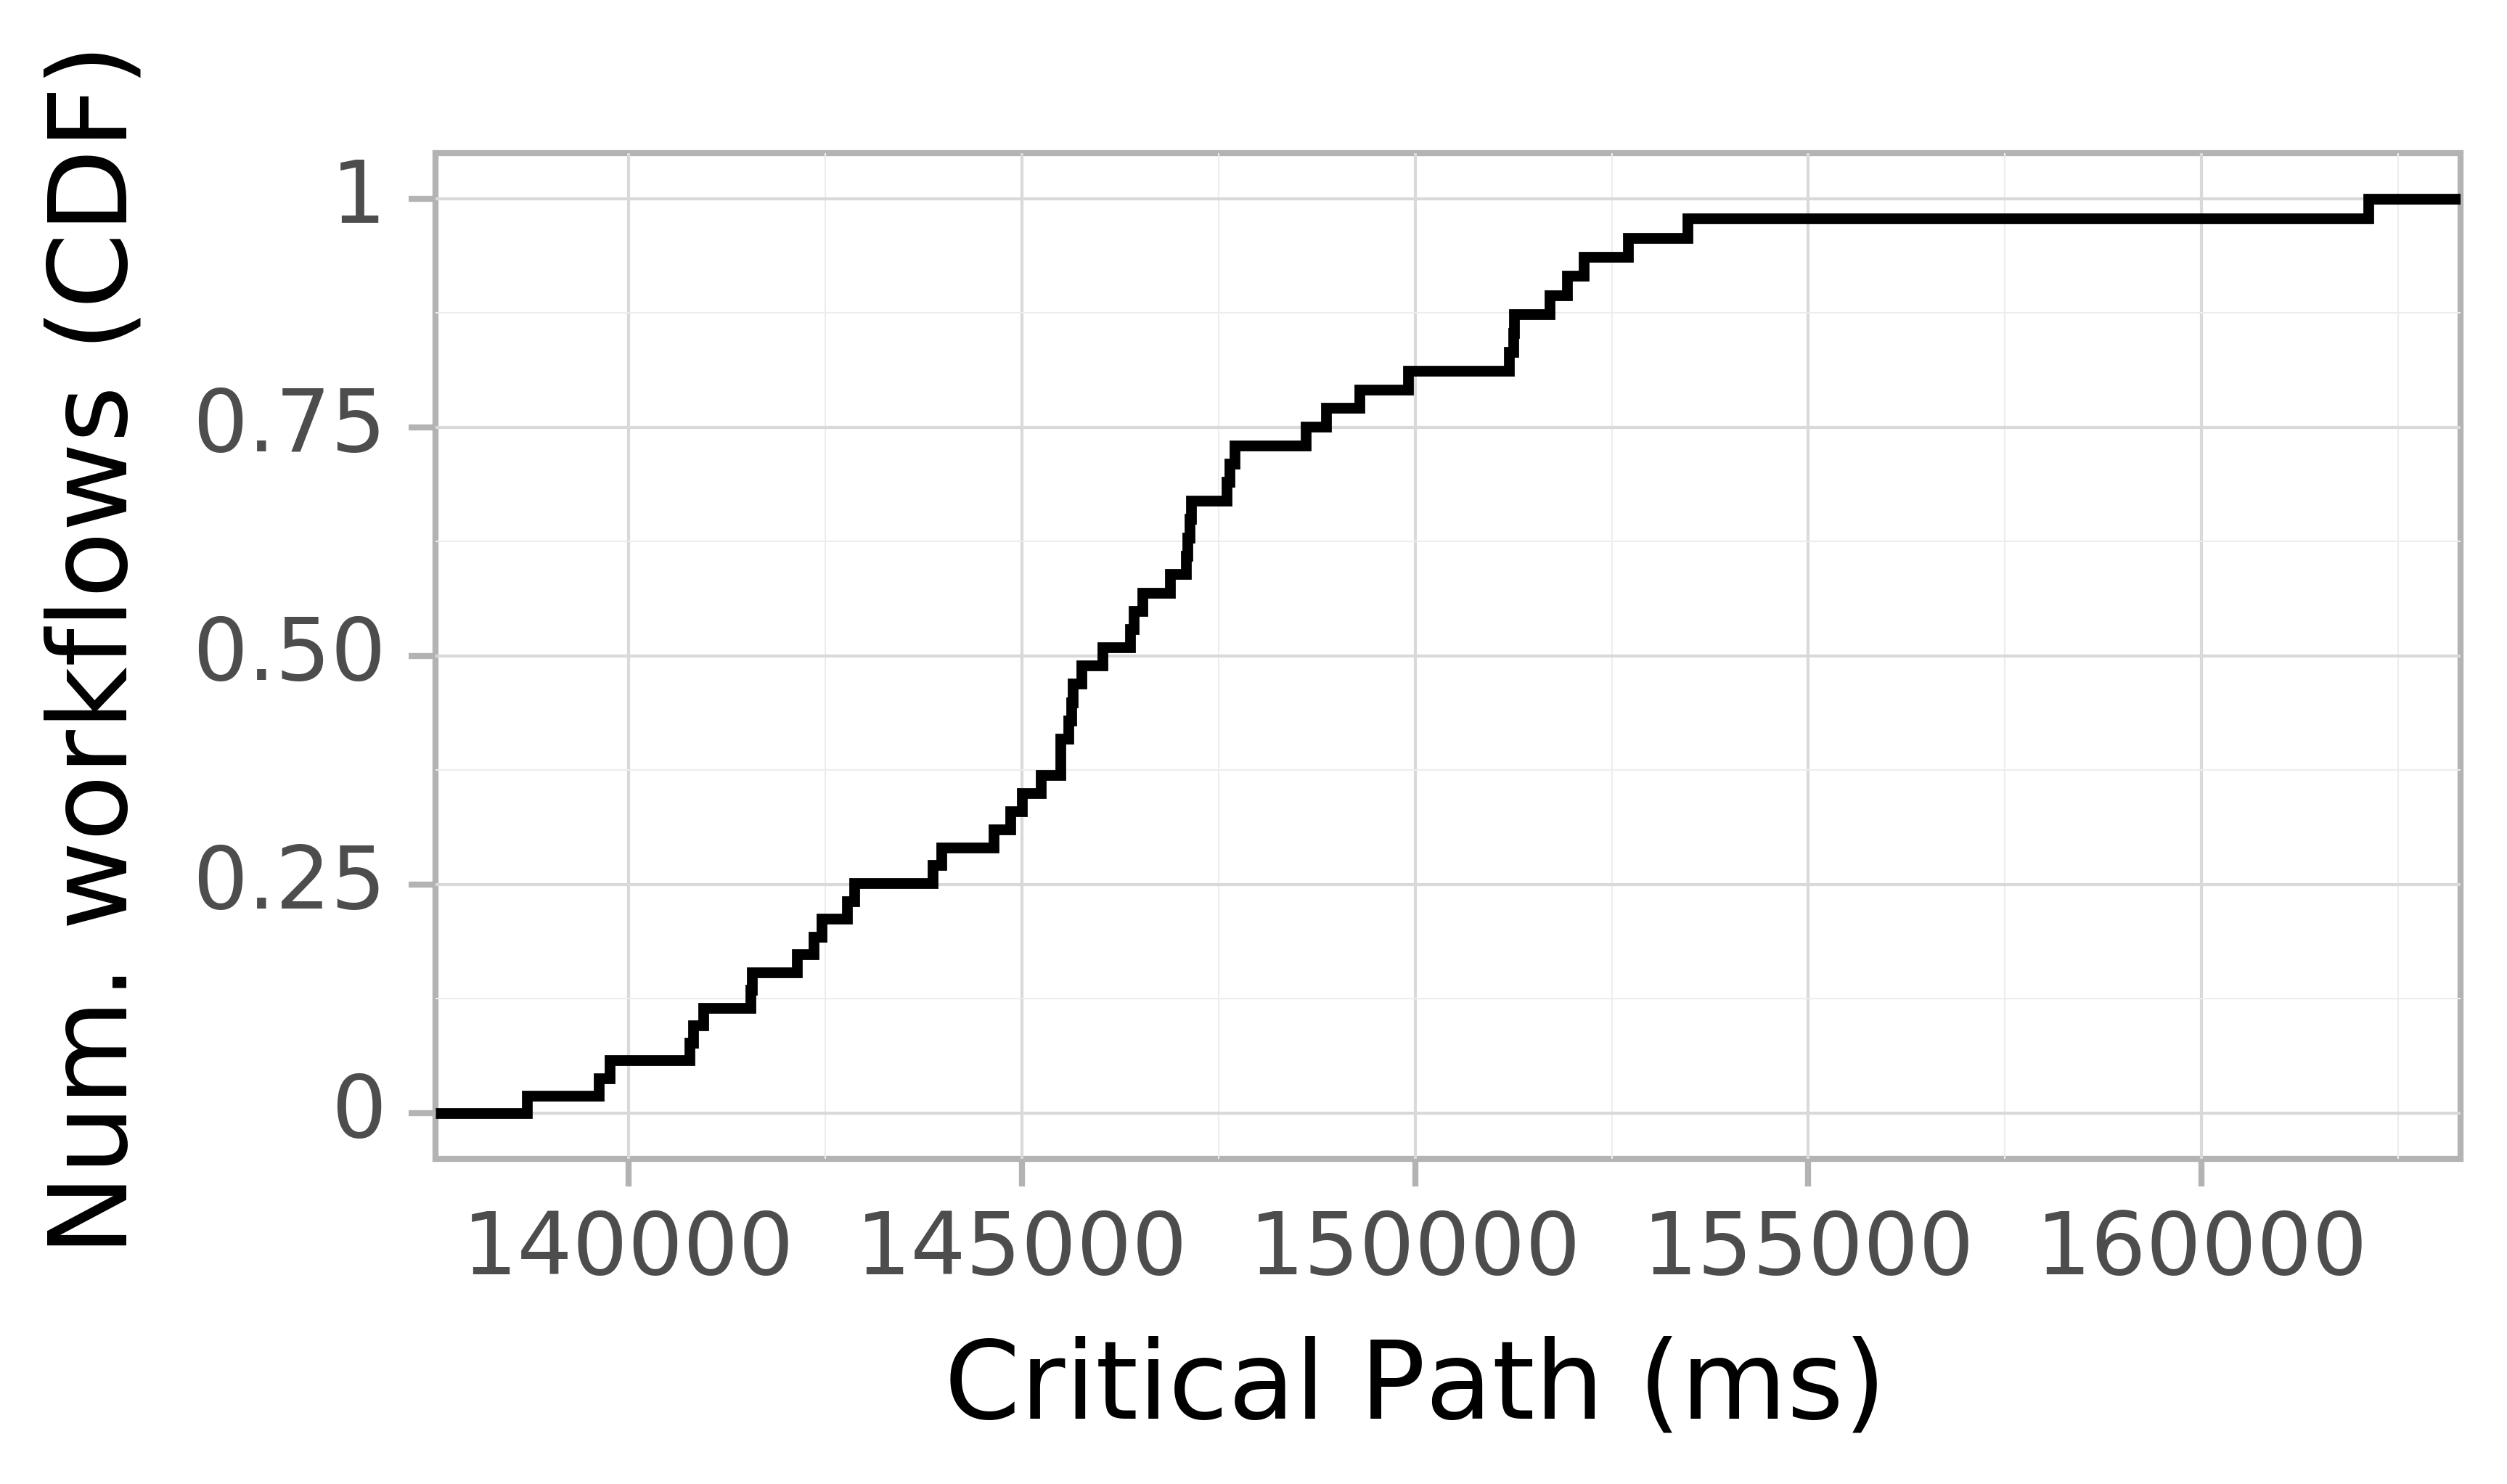 Job runtime CDF graph for the askalon-new_ee37 trace.